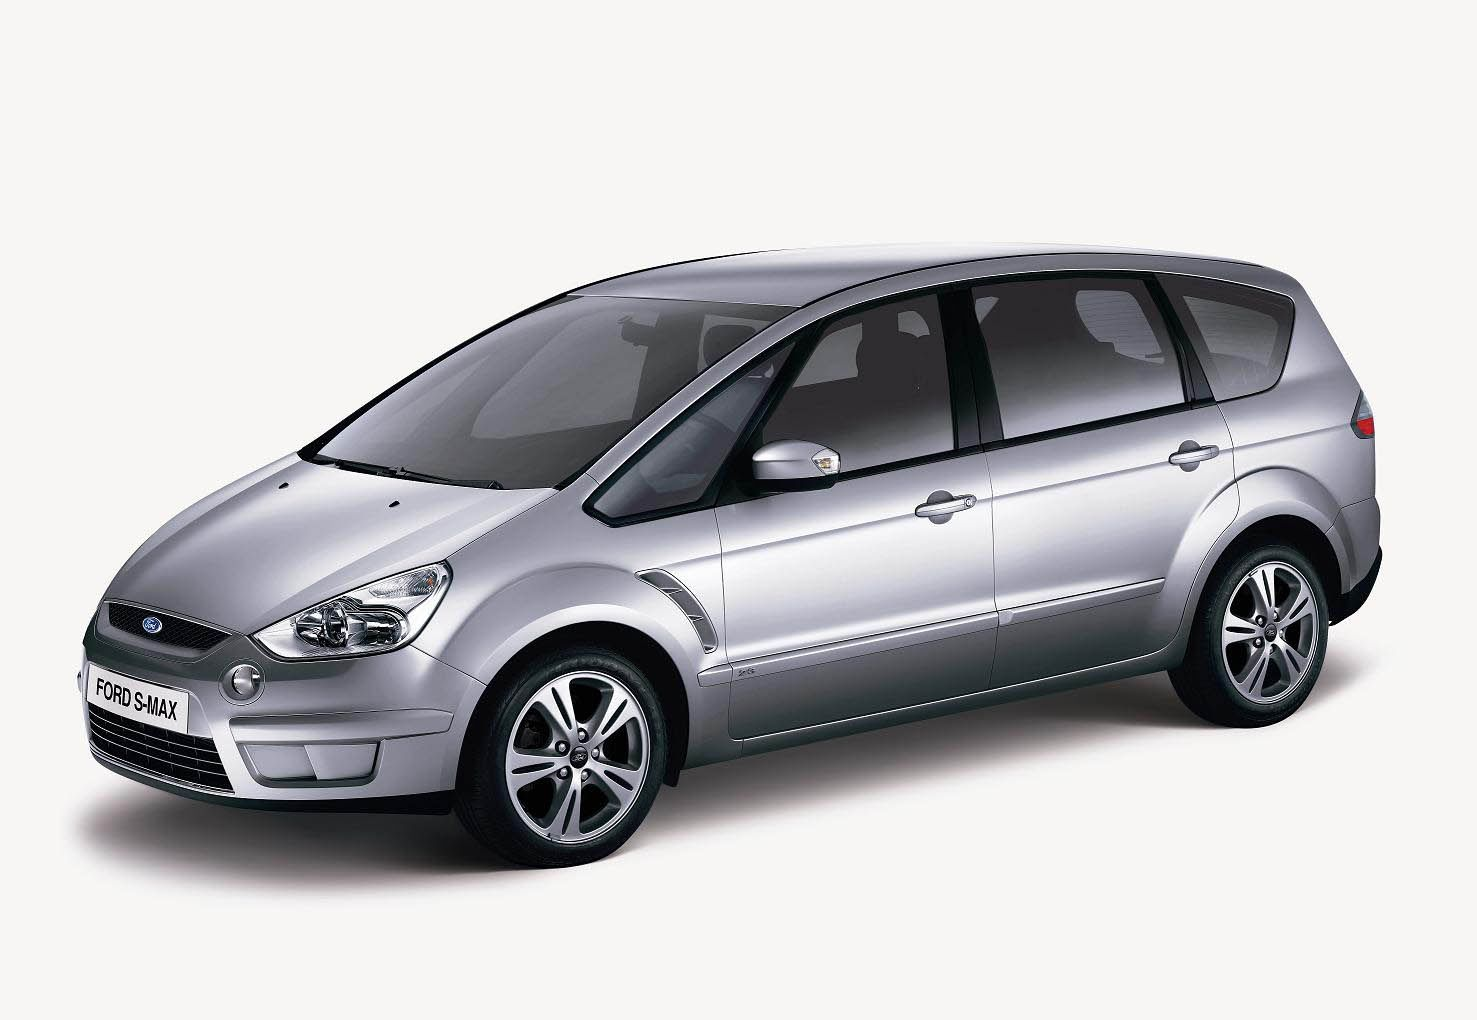 ford s max specs of wheel sizes tires pcd offset and rims wheel. Black Bedroom Furniture Sets. Home Design Ideas